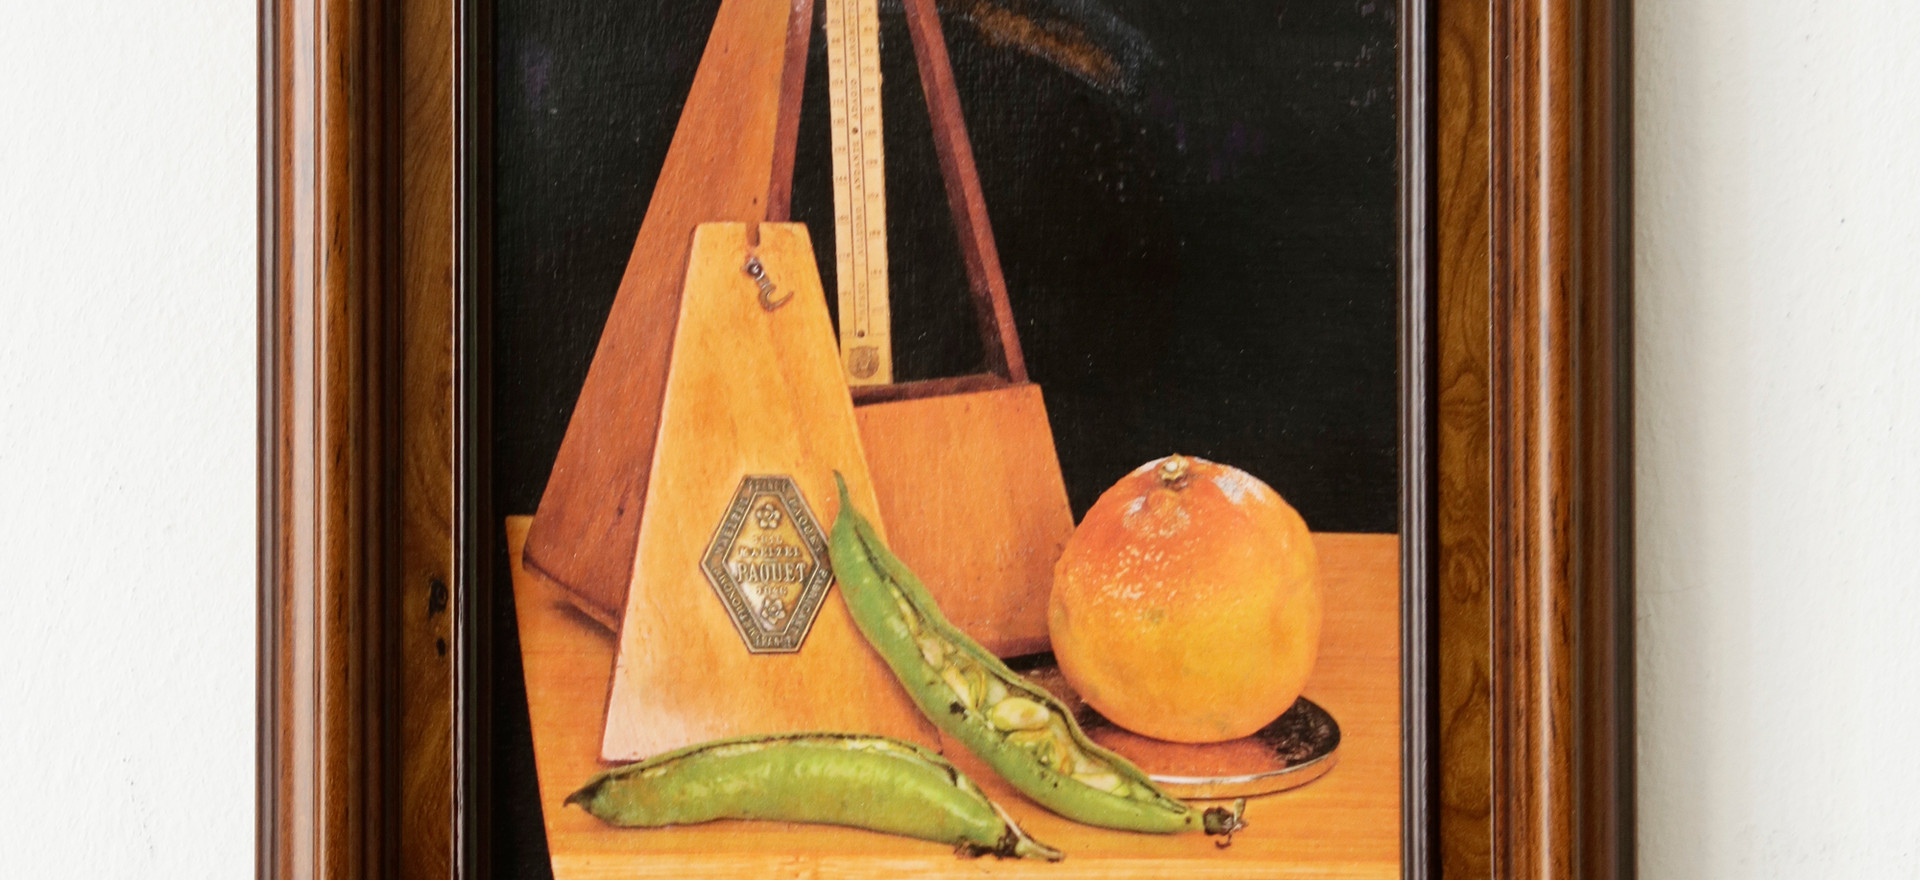 An Orange and some Beans in wooden frame